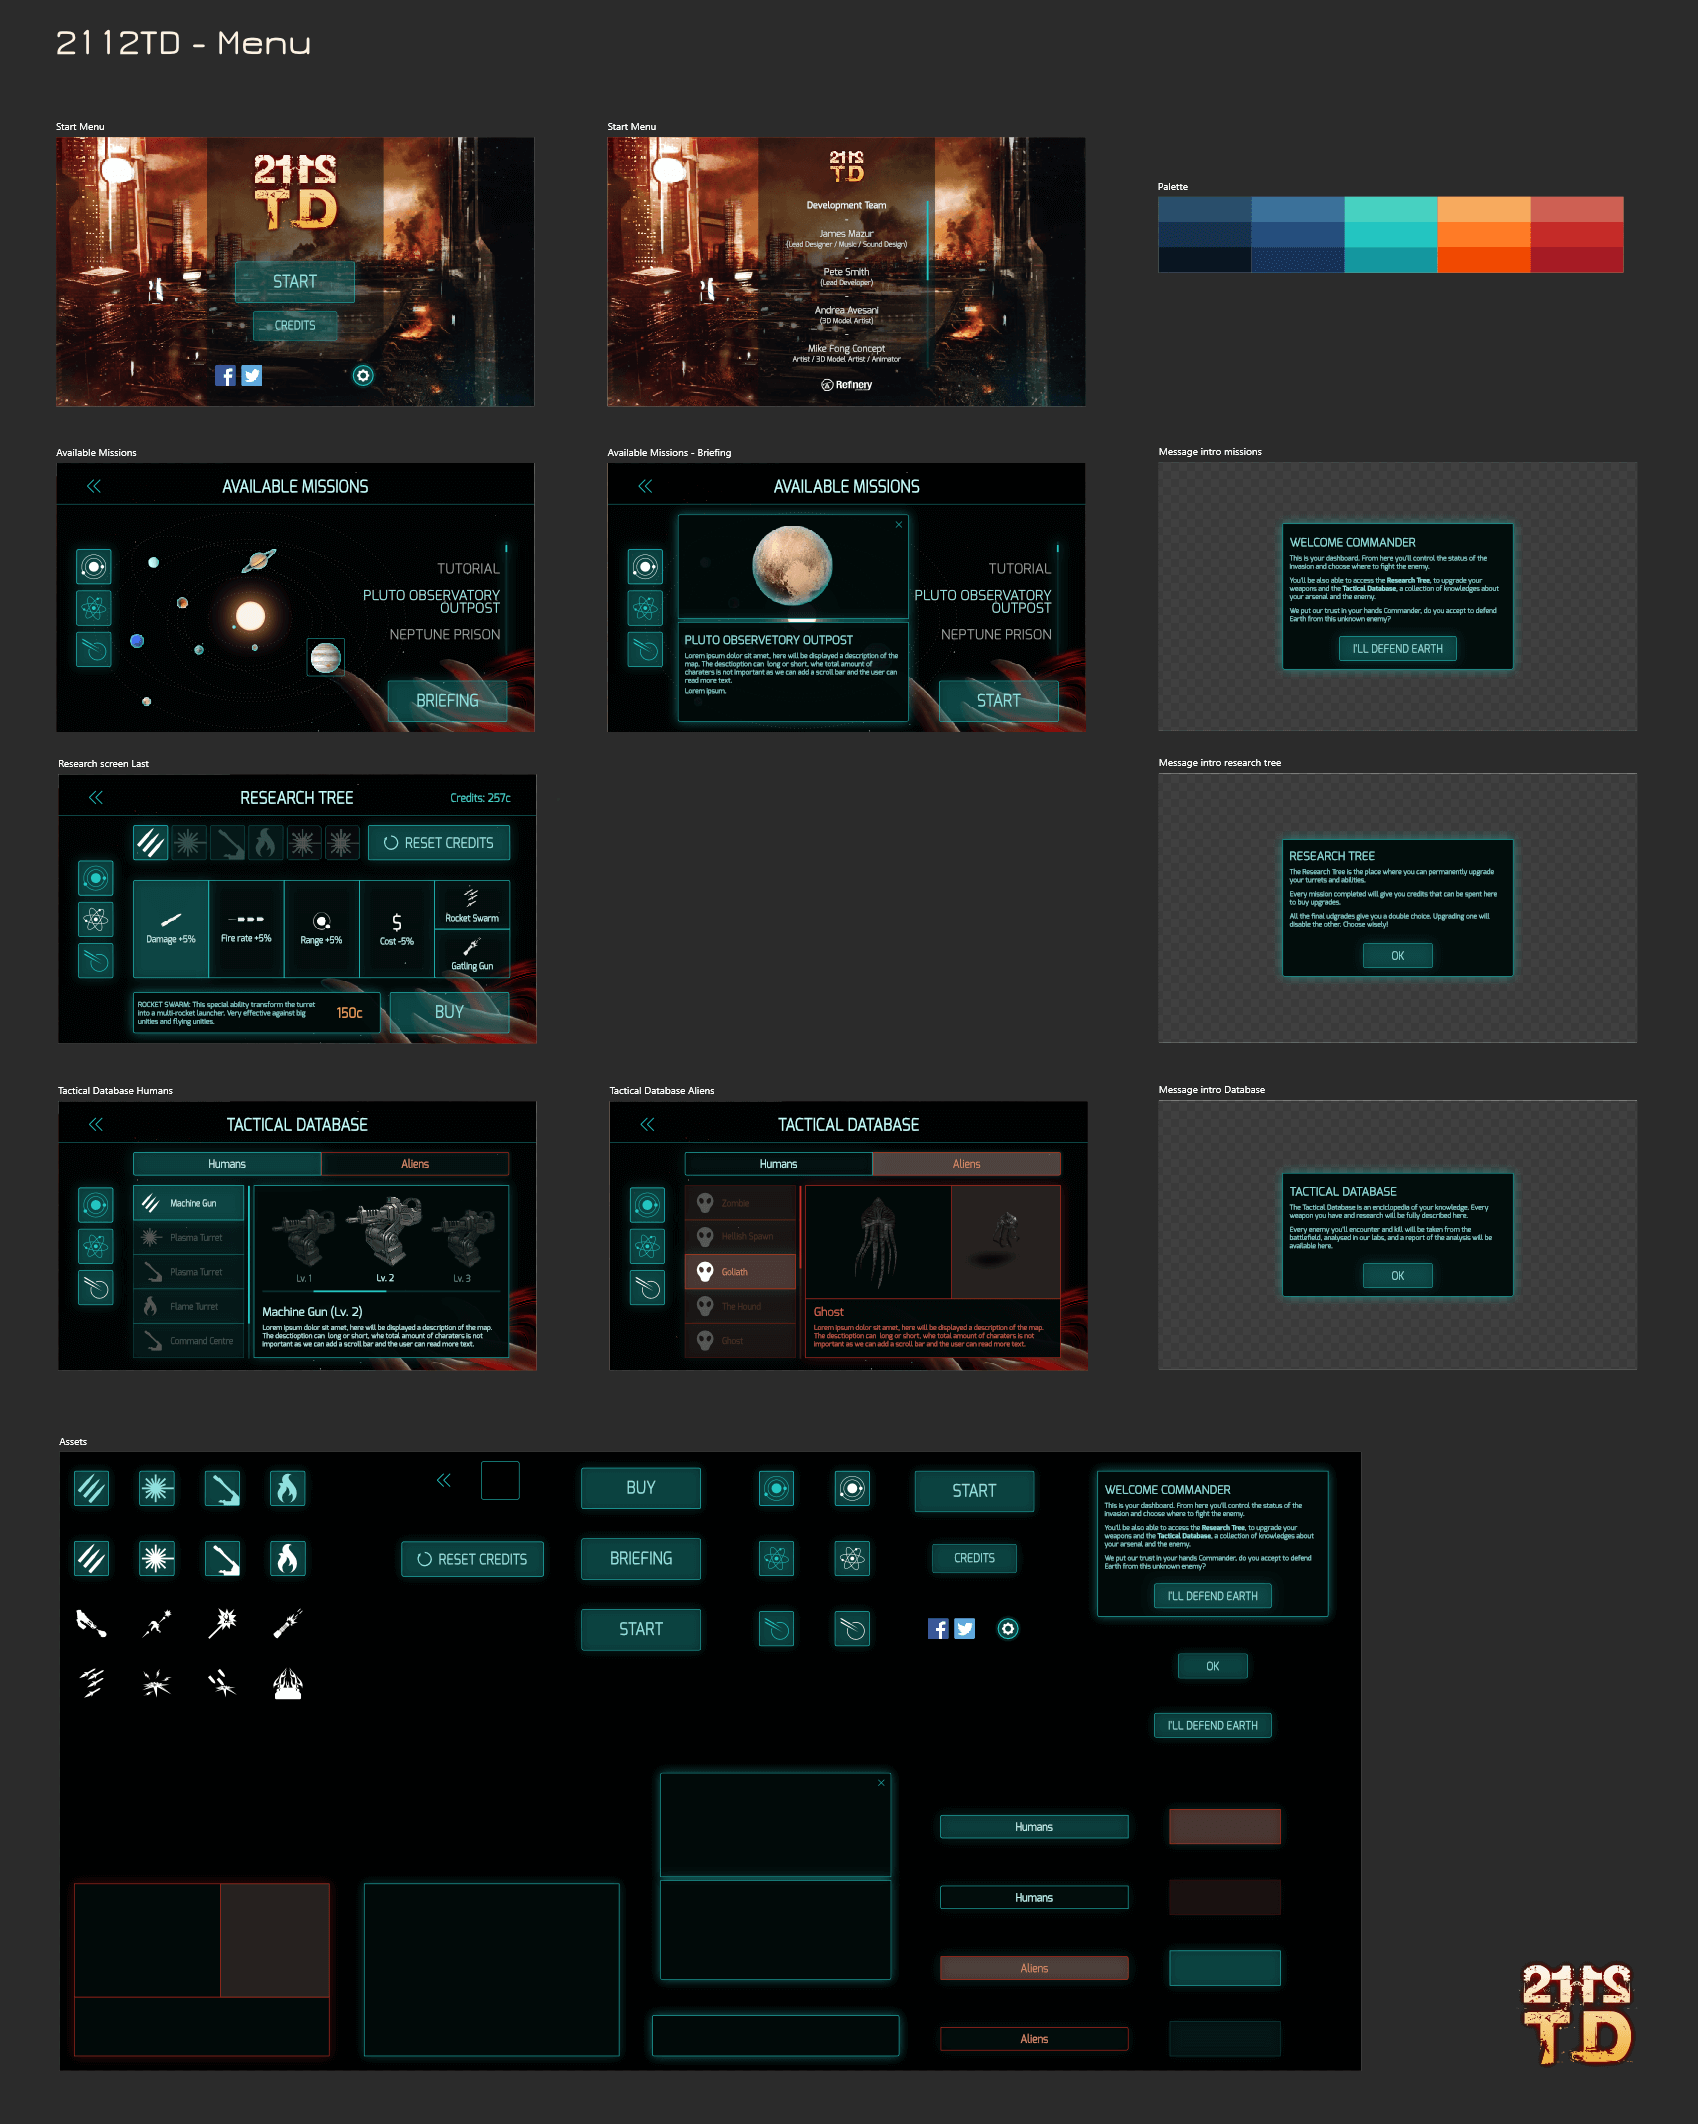 Image of the game 2112TD menu elements